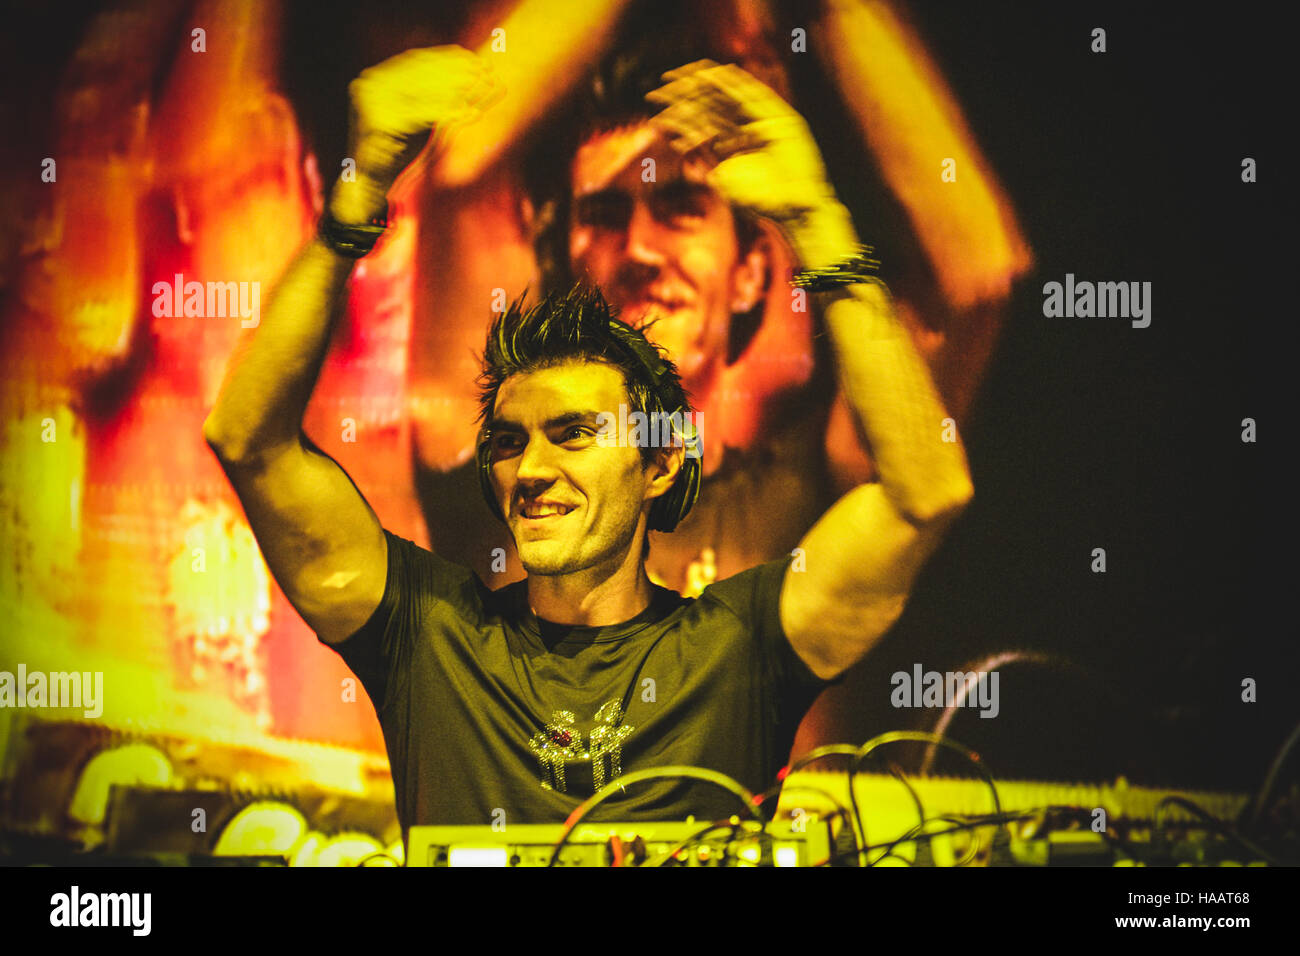 Torino, Italy. 29th June, 2012. Gabry Ponte of Eiffel65 performing live at Gruvillage Festival 2012 © Alessandro Stock Photo